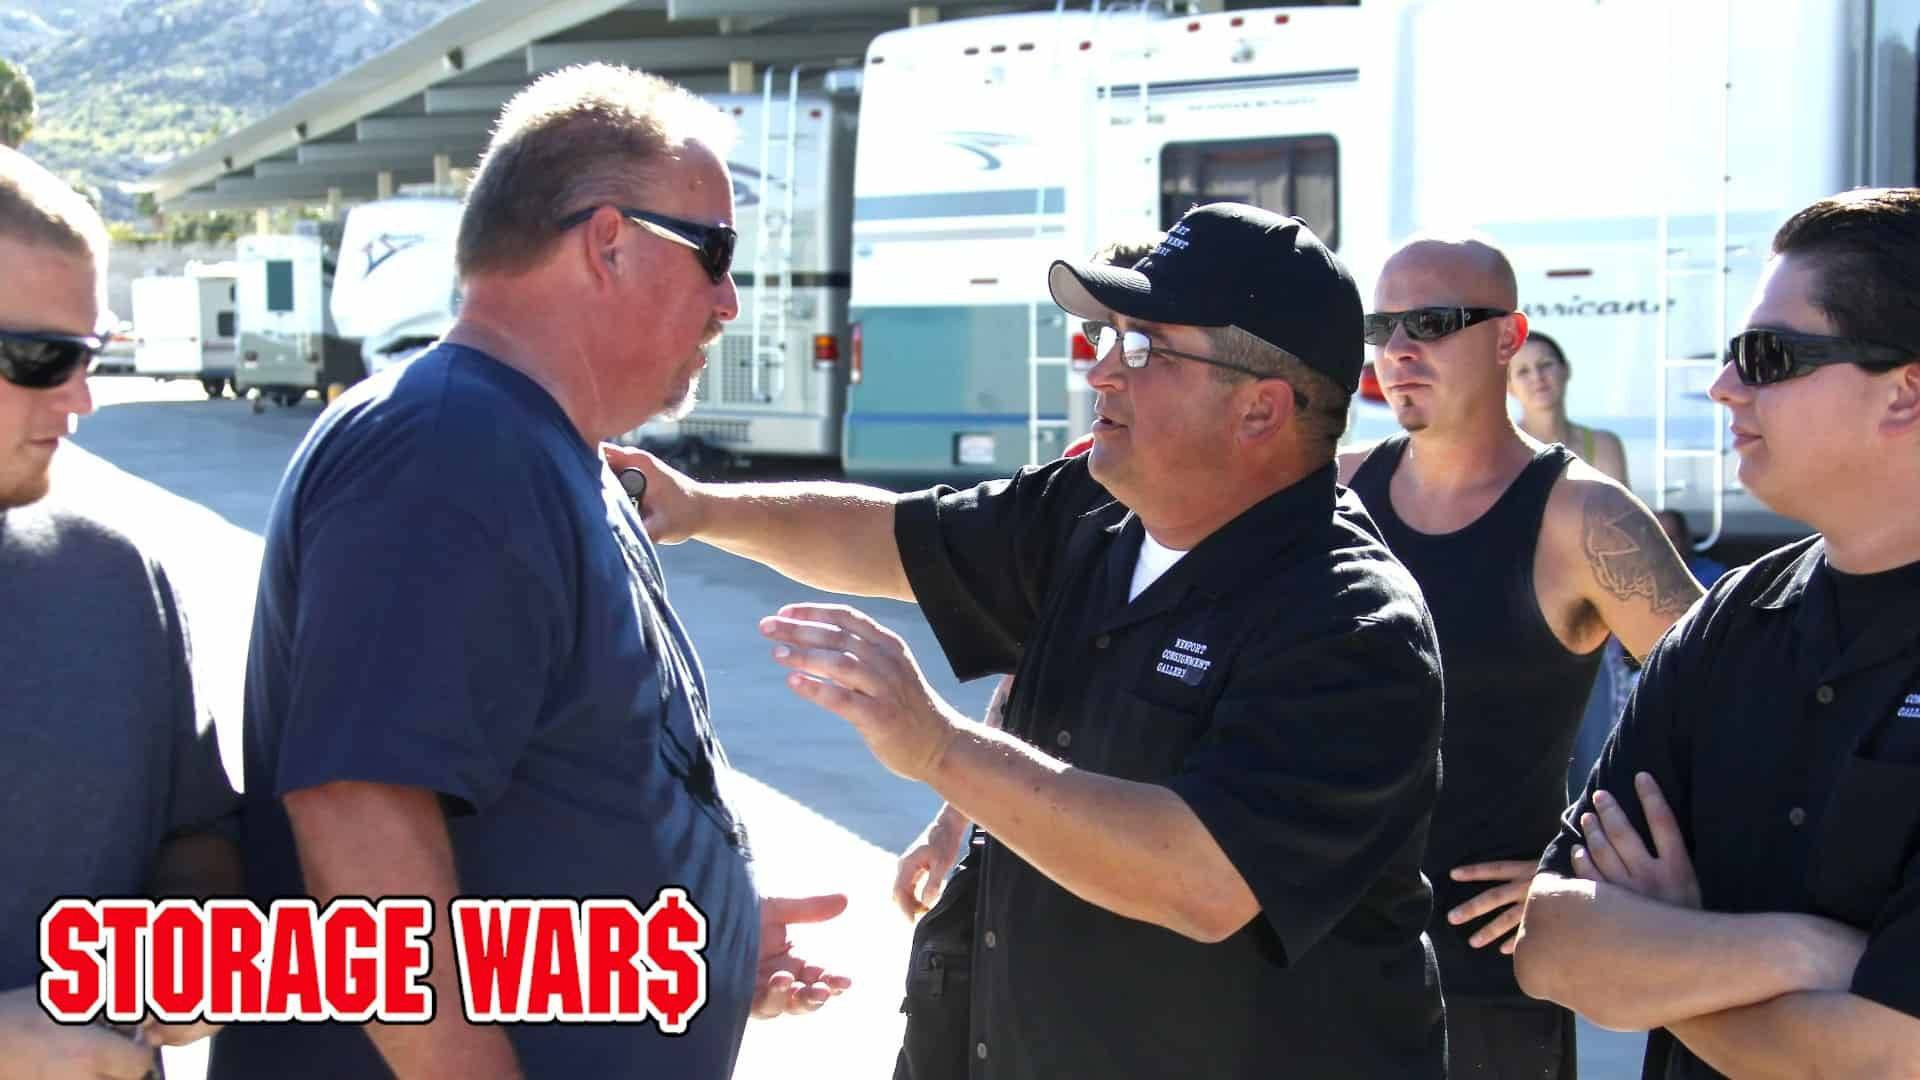 Yuuup! What Happened To Dave Hester From Storage Wars?